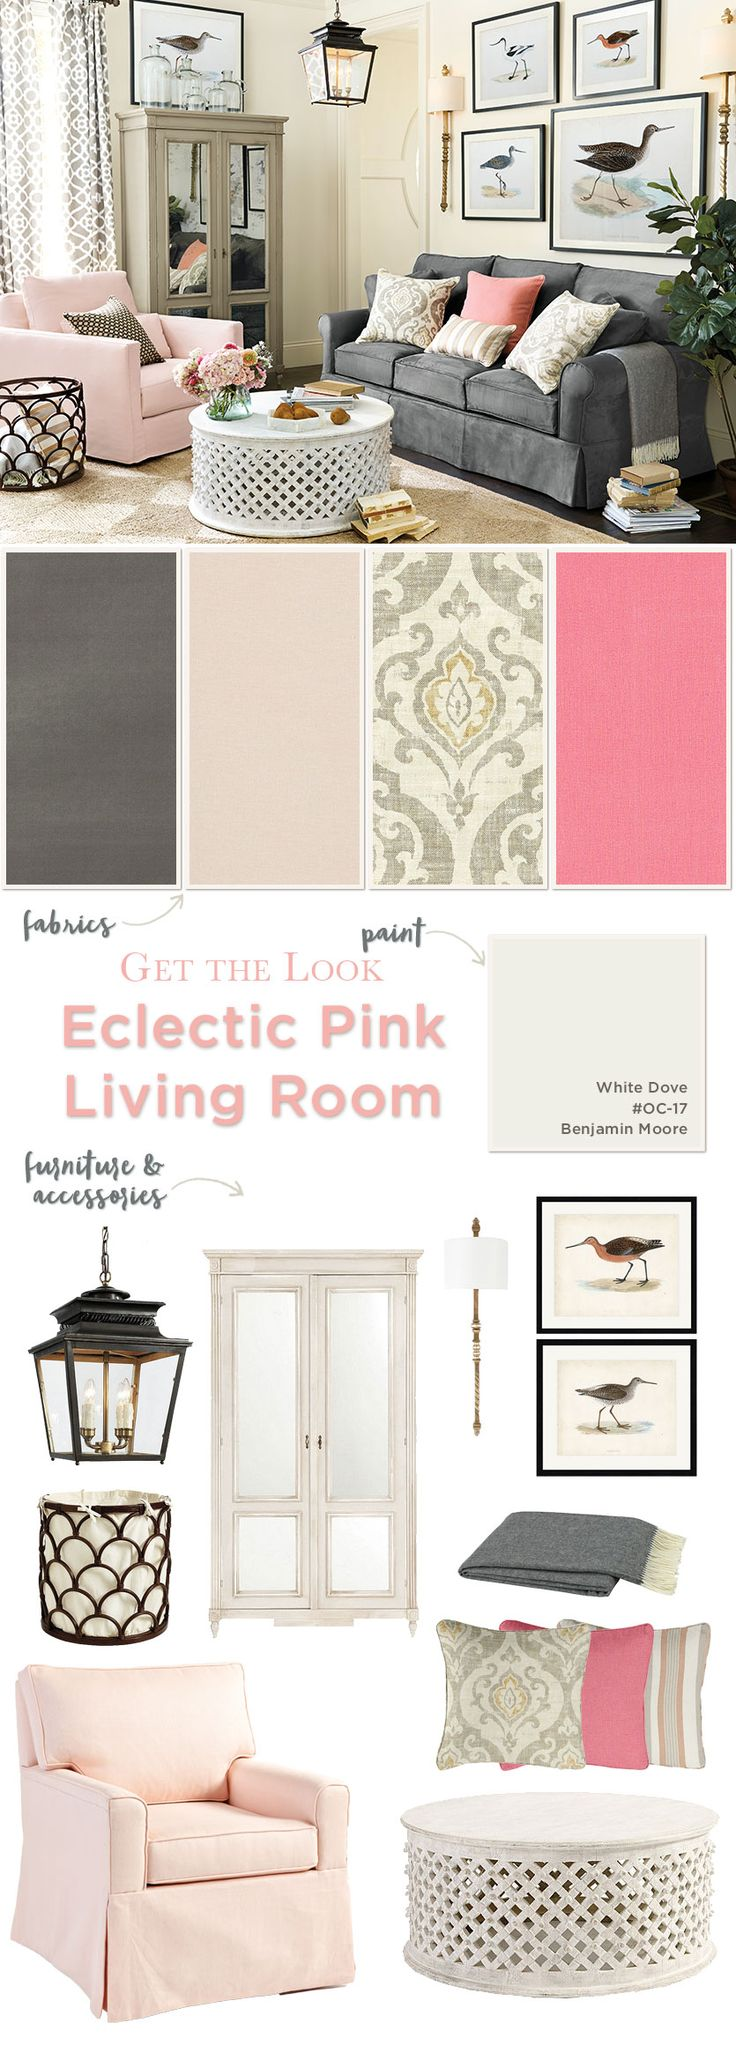 Get the look of this eclectic living room with pink accents